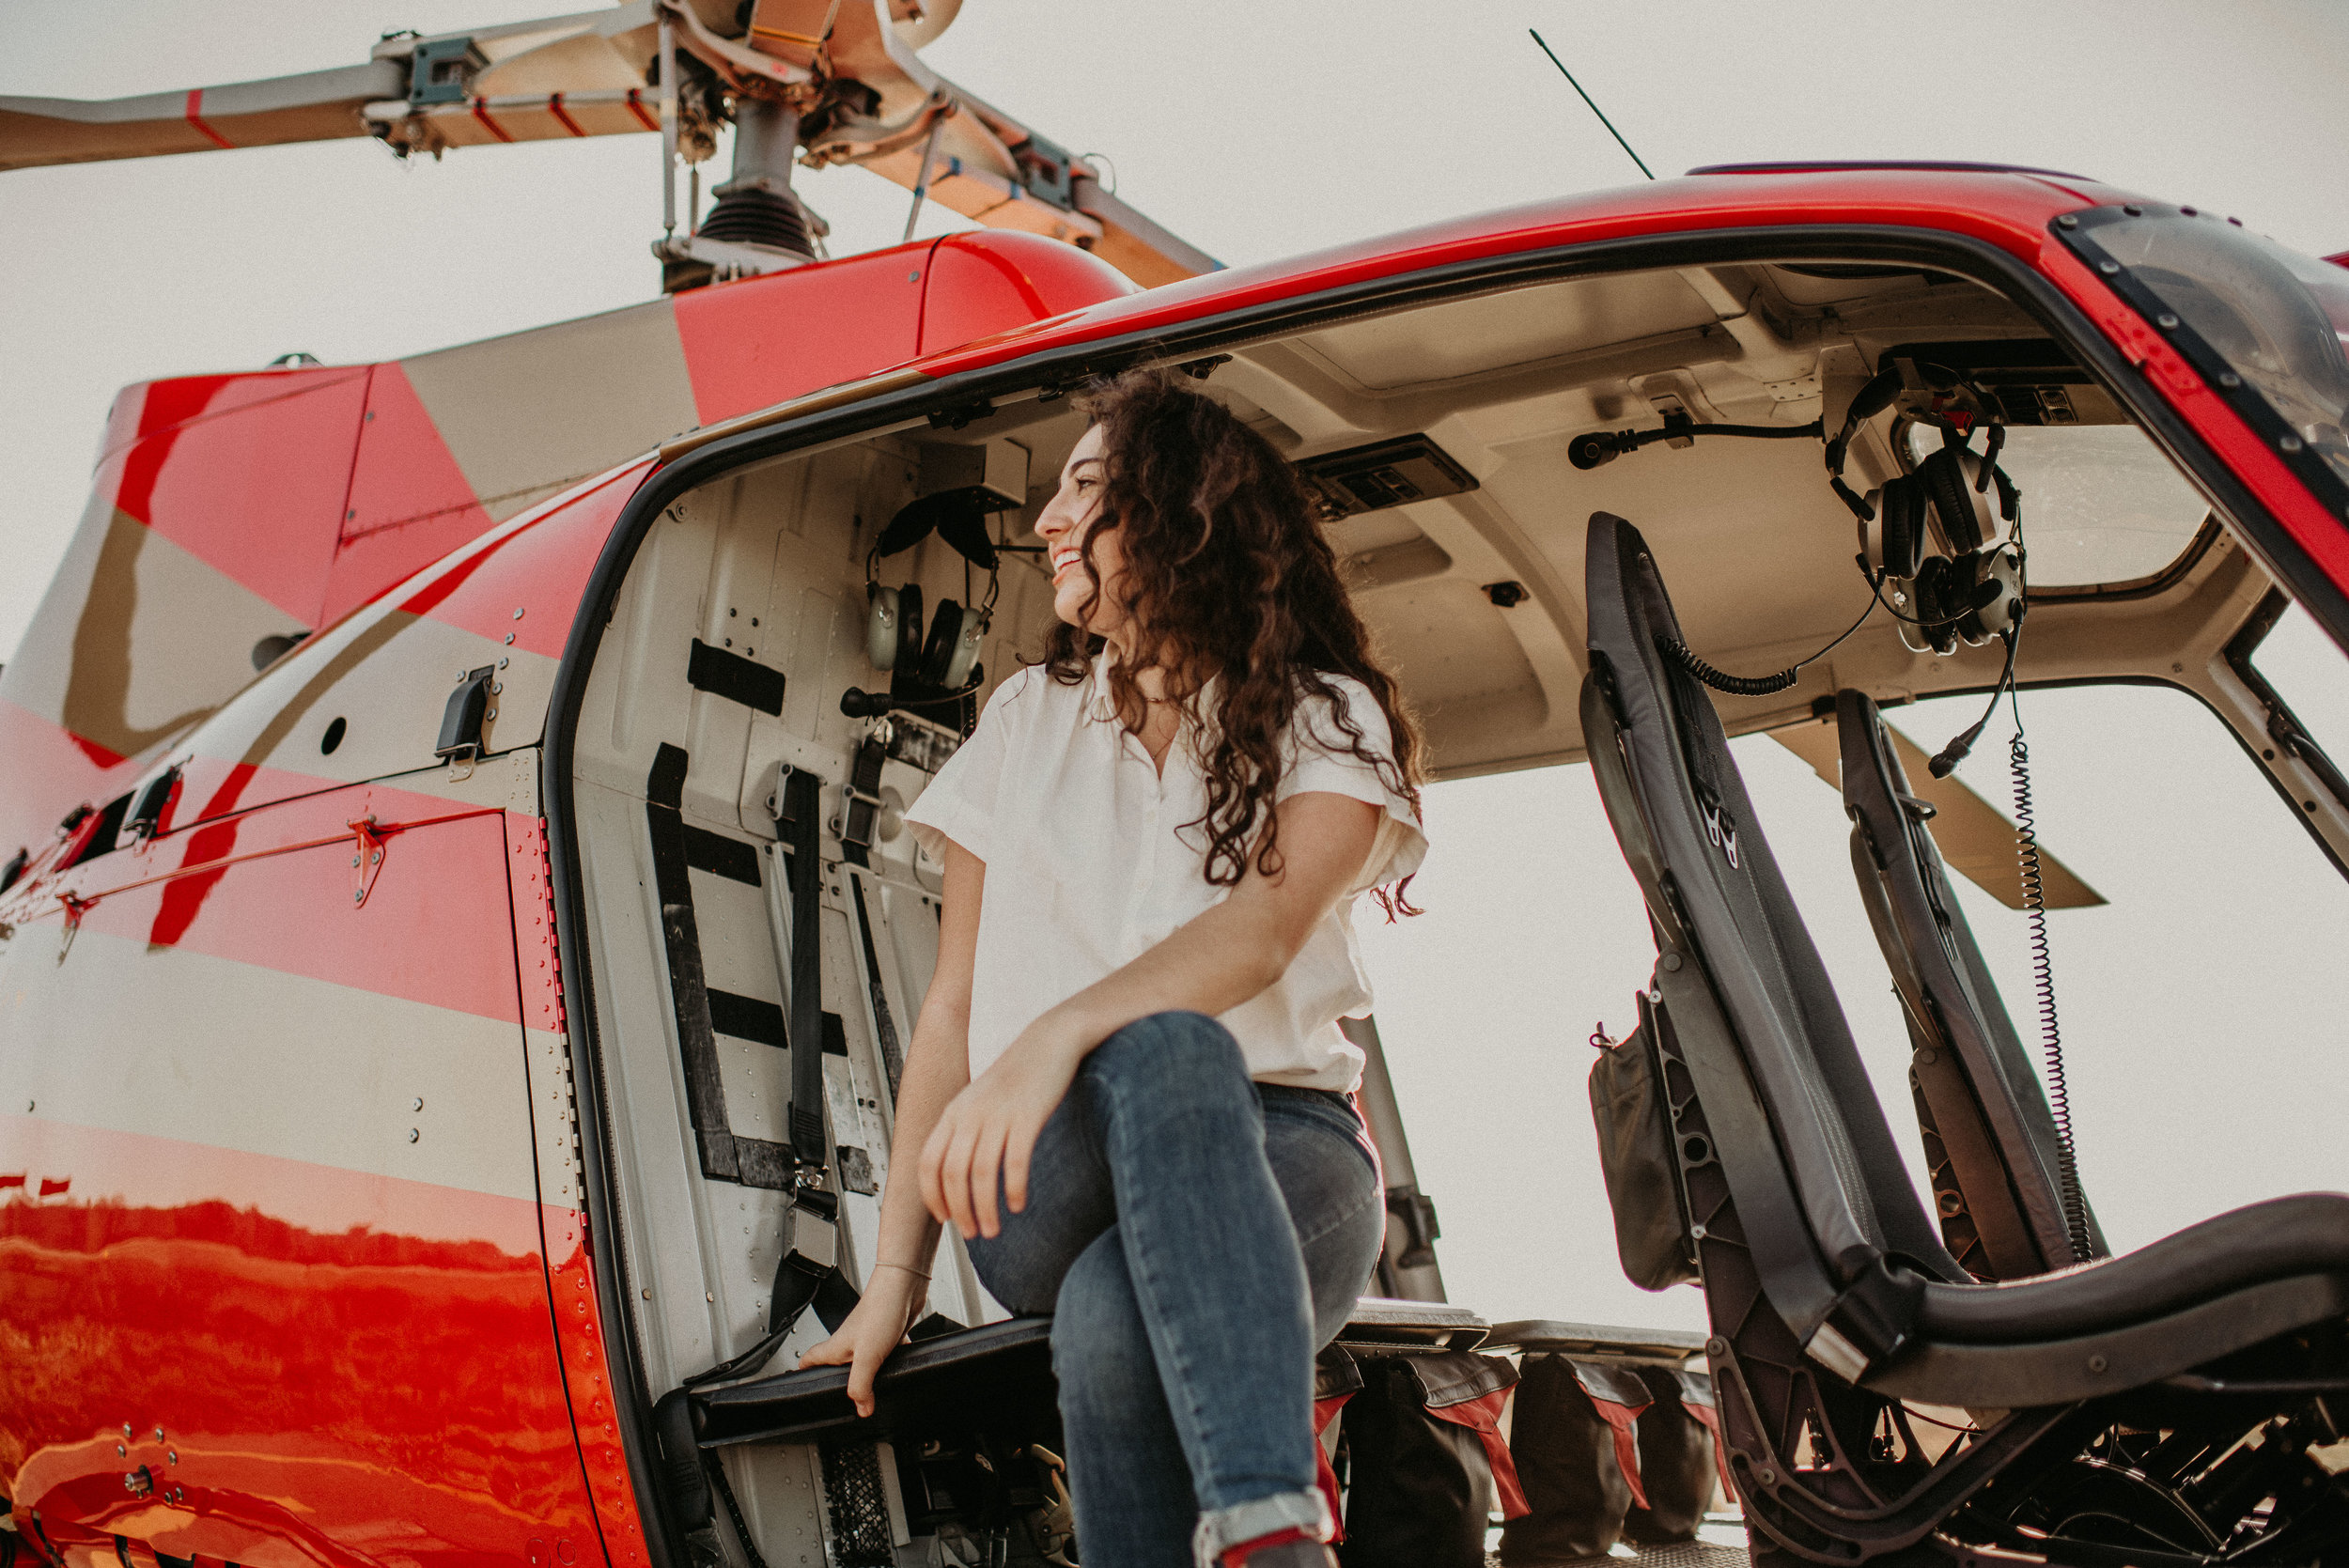 Just chillin' on the helicopter!  - (Still in awe that this happened!!!)